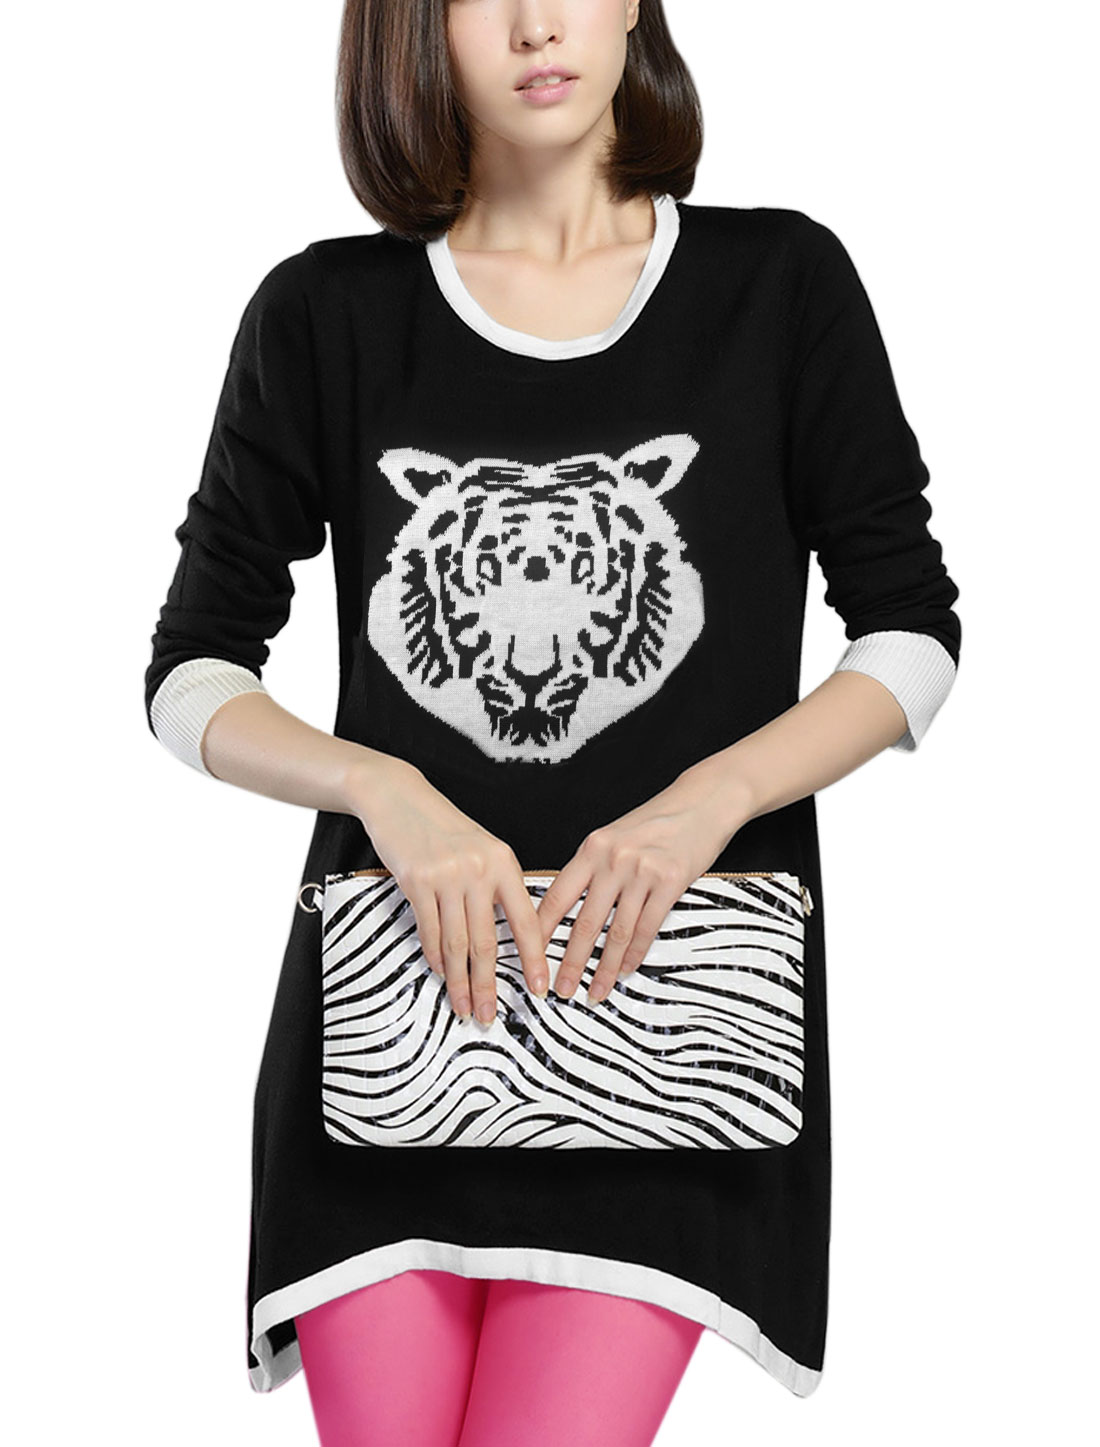 Lady 3/4 Sleeves Tigger Pattern Irregular Hem Casual Tunic Knit Top Black XS